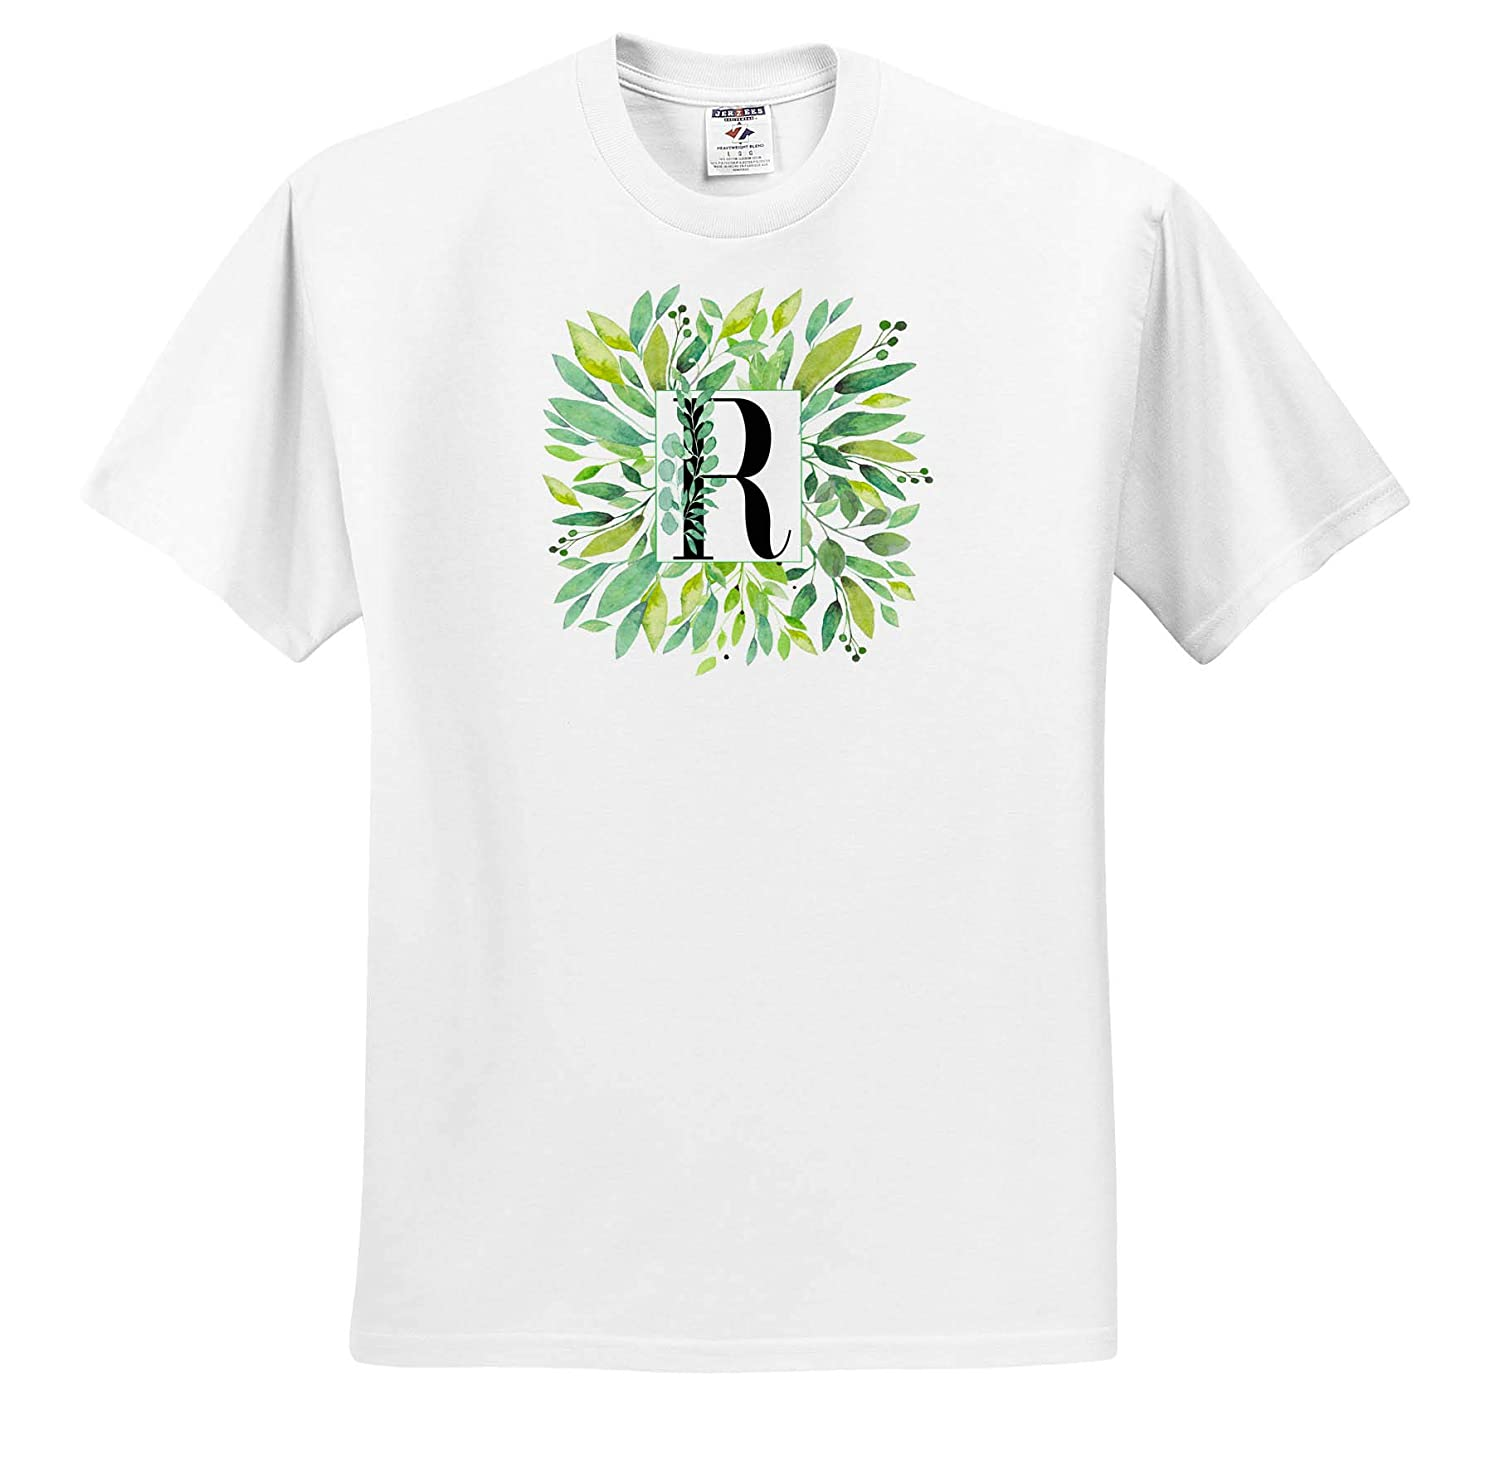 ts/_318094 Monograms 3dRose Anne Marie Baugh Pretty Image of Watercolor Greenery Leaves Monogram R Adult T-Shirt XL